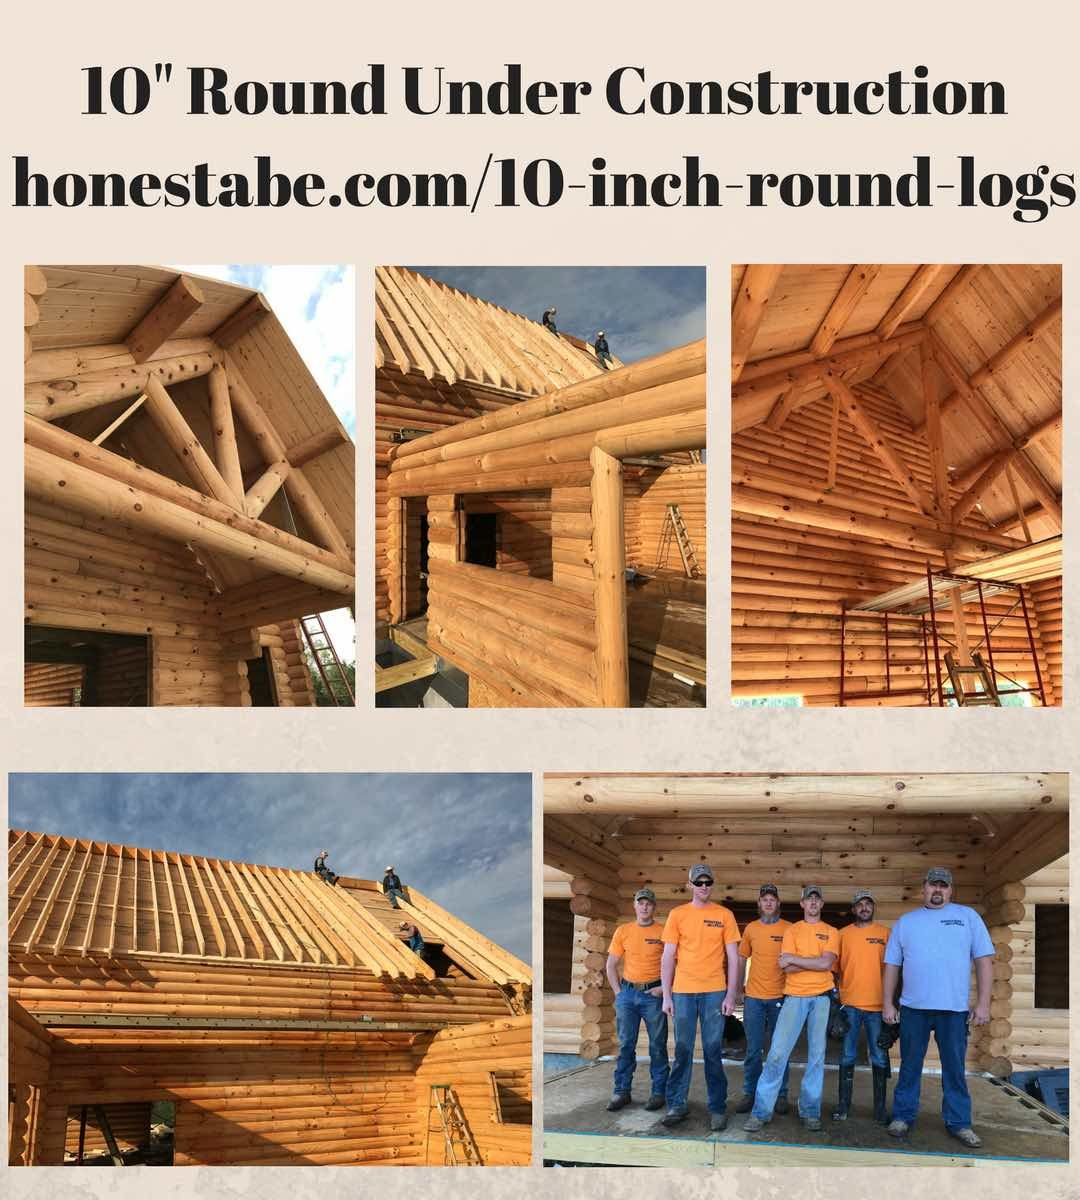 10 Inch Round Logs Milled For Log Cabins By Honest Abe Log Homes Log Homes Patterson Homes Log Home Plans